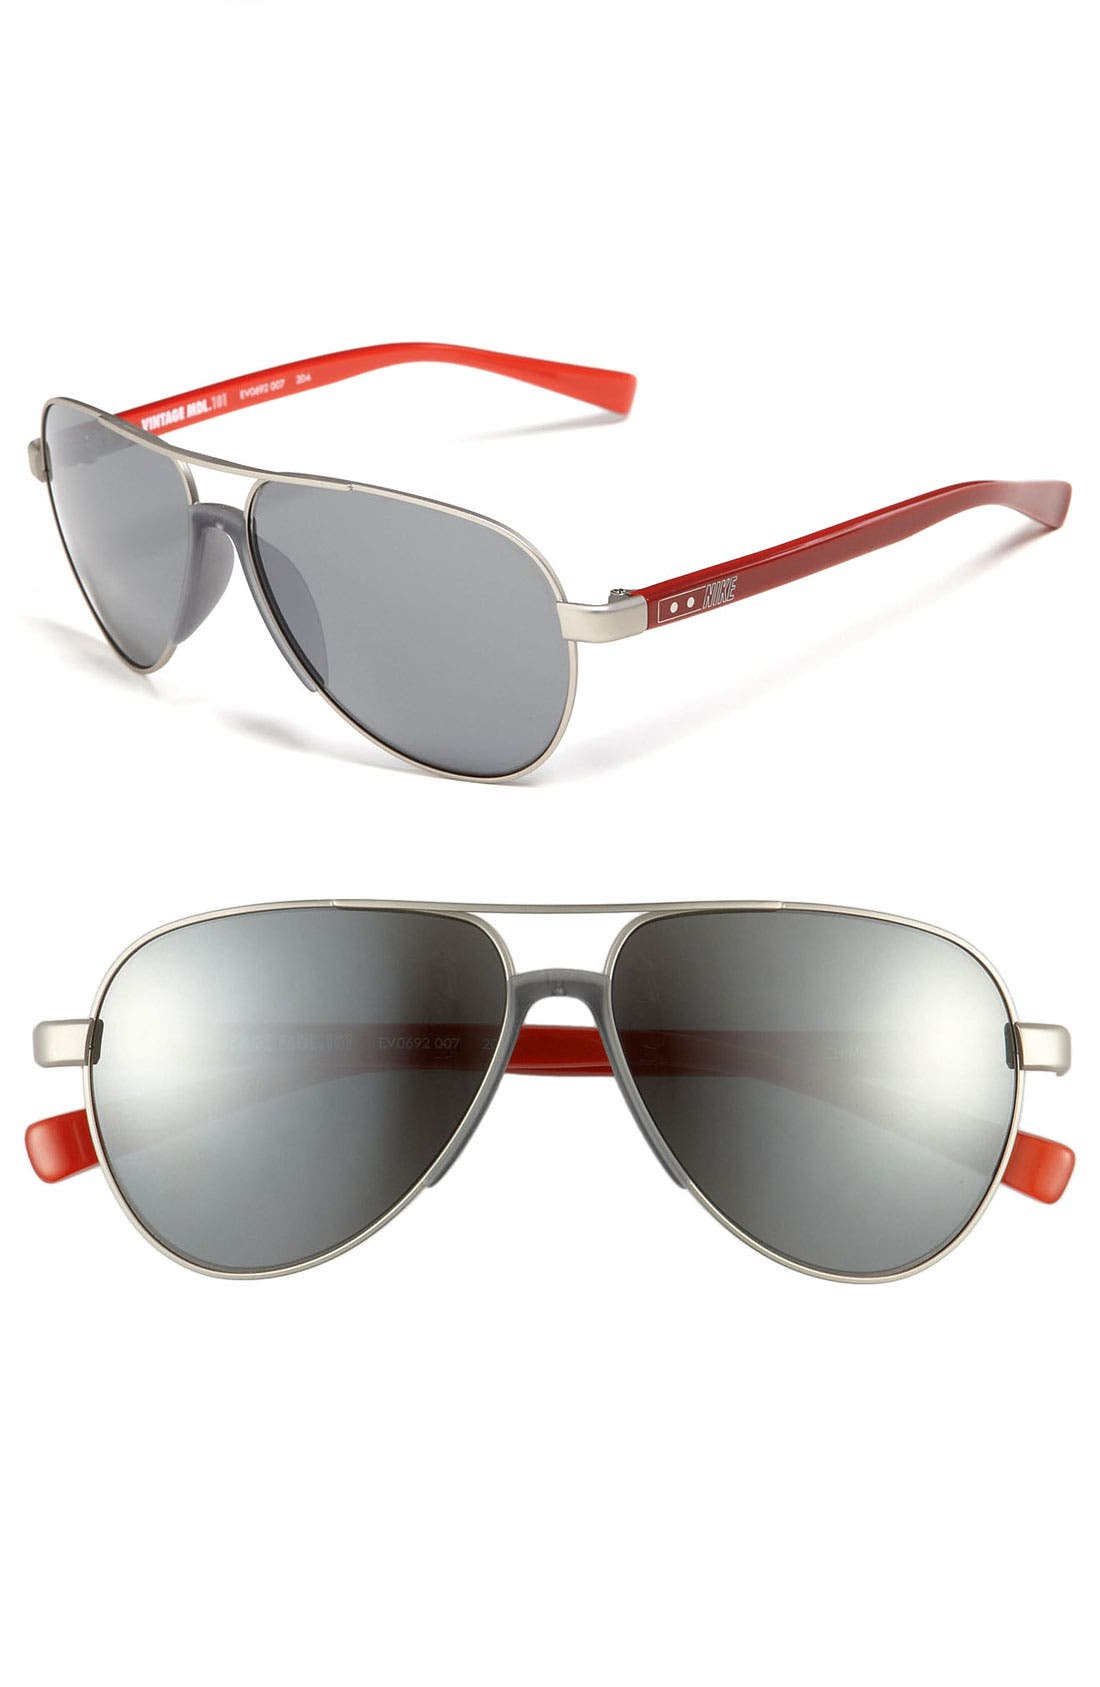 Main Image - Nike Aviator Sunglasses